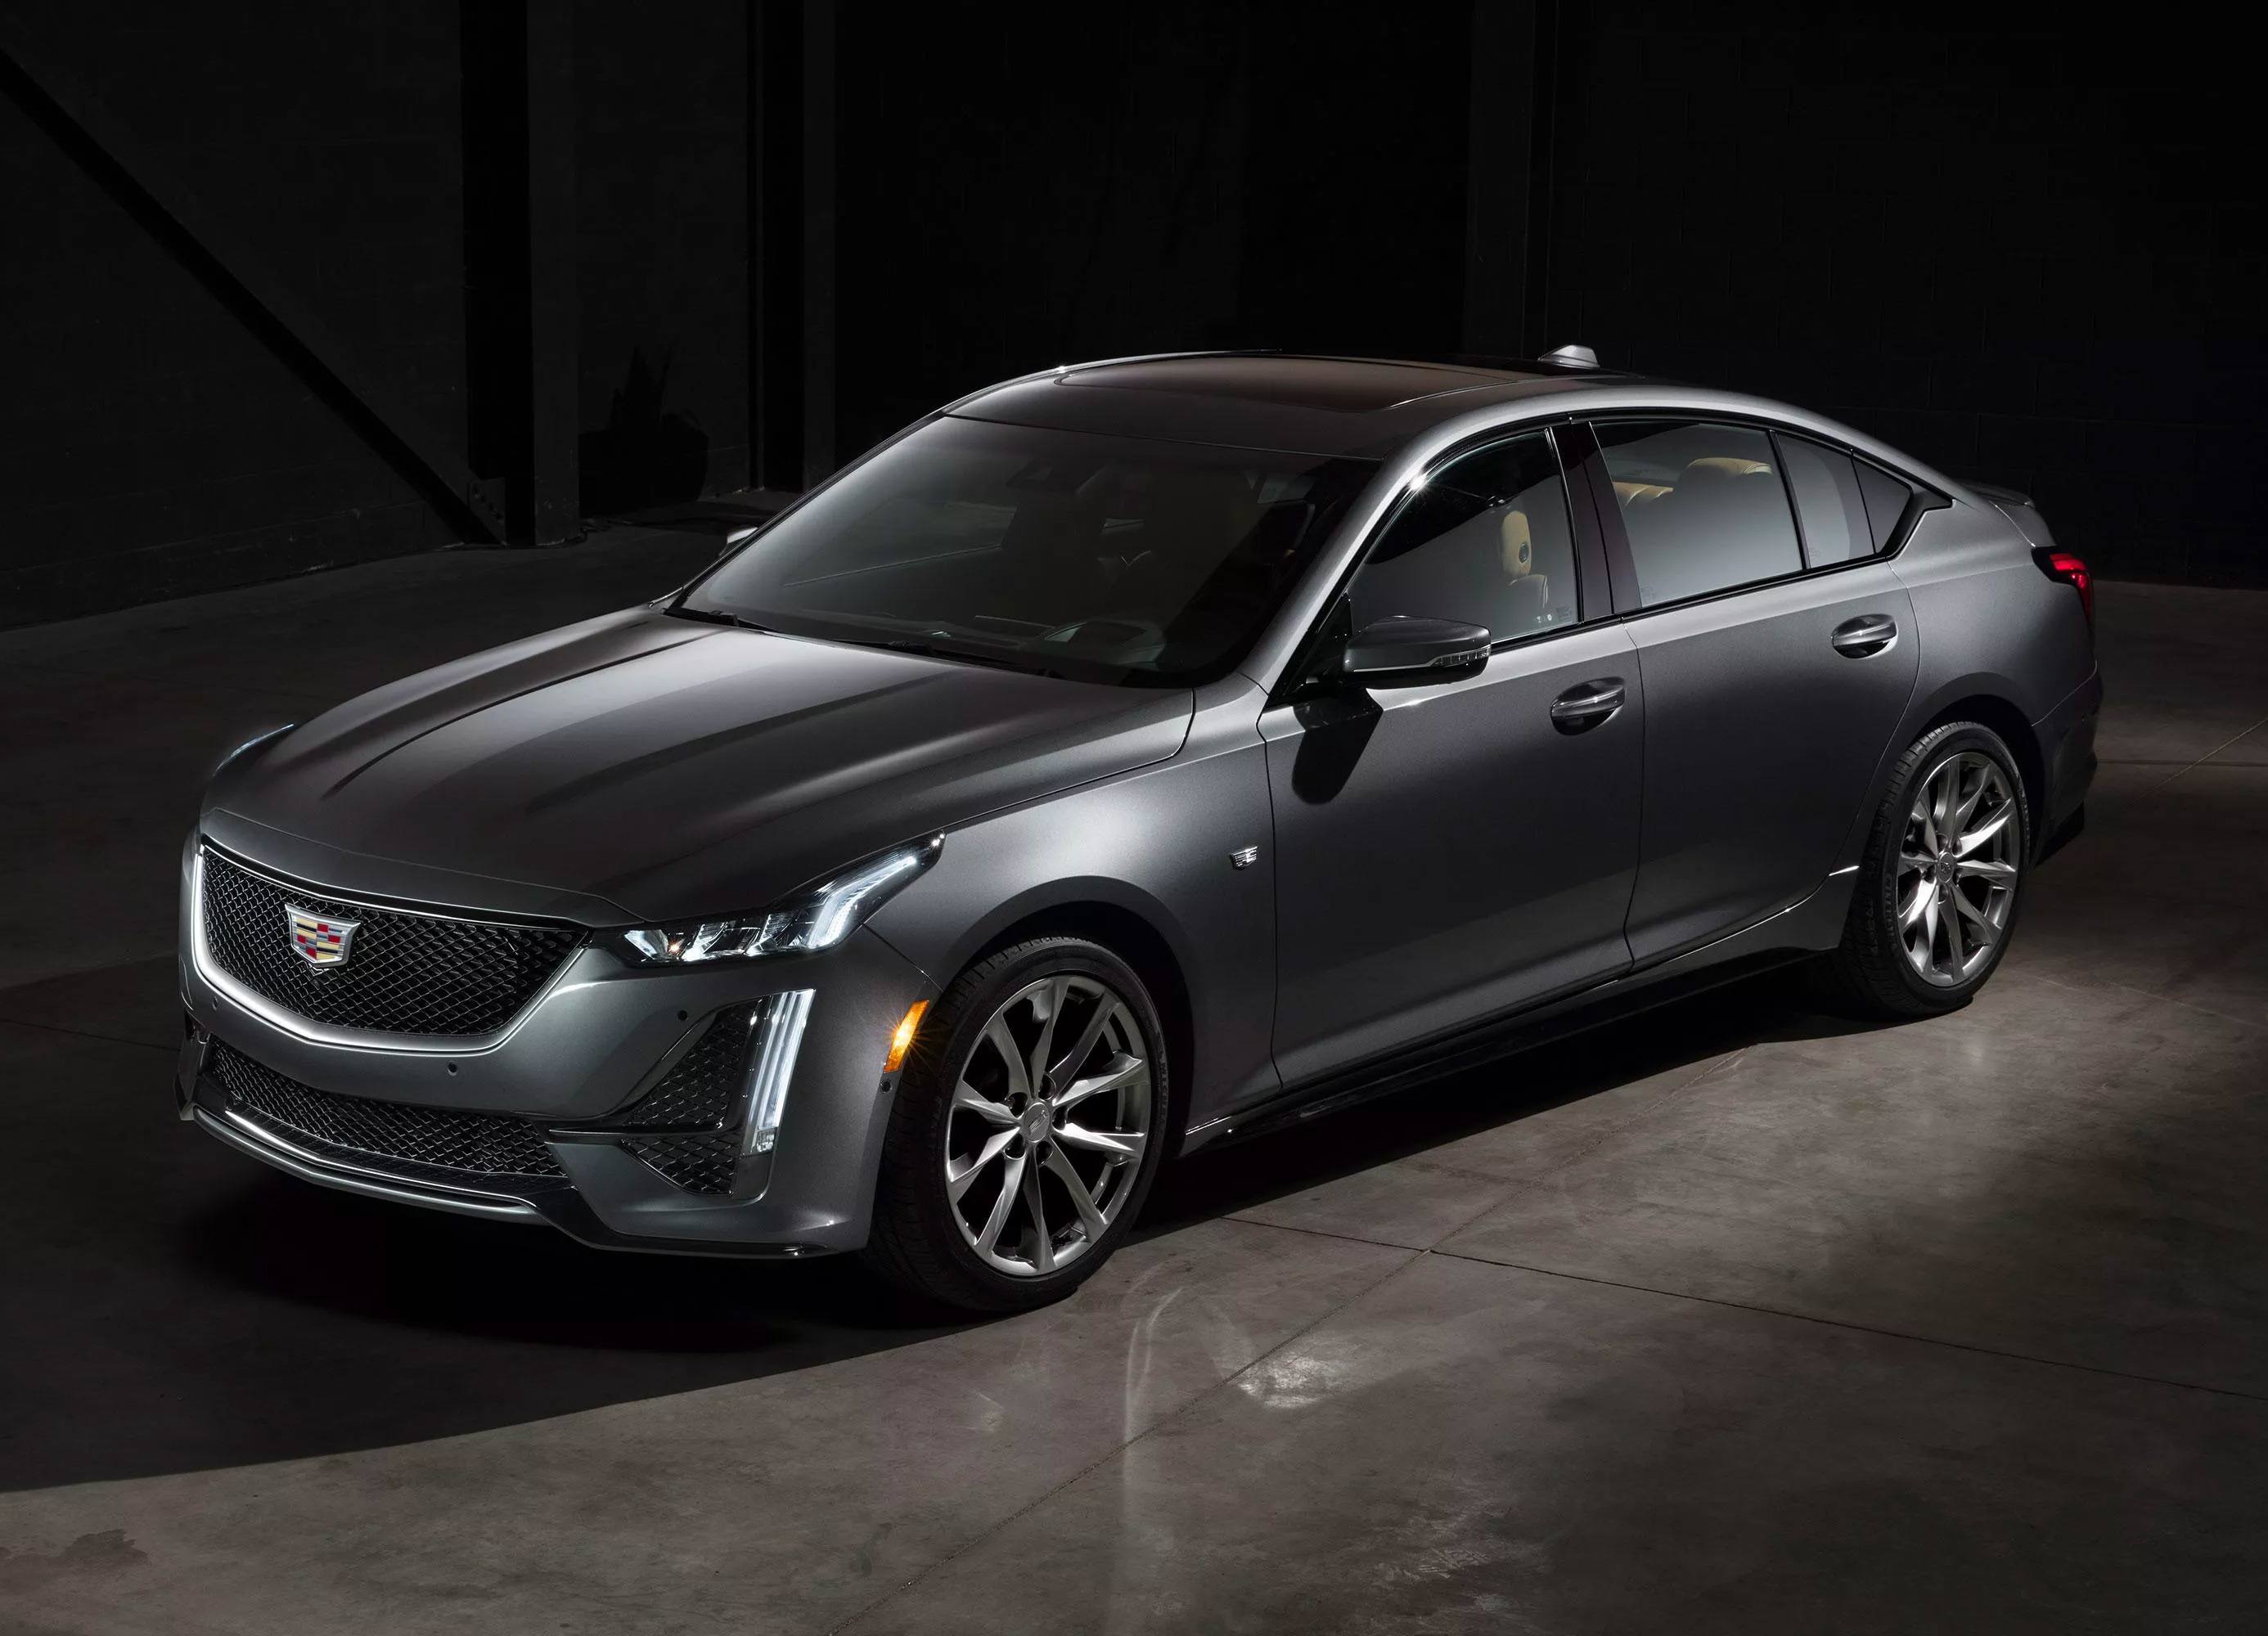 Cadillac Introduces 2020 CT5 Sedan at werd.com